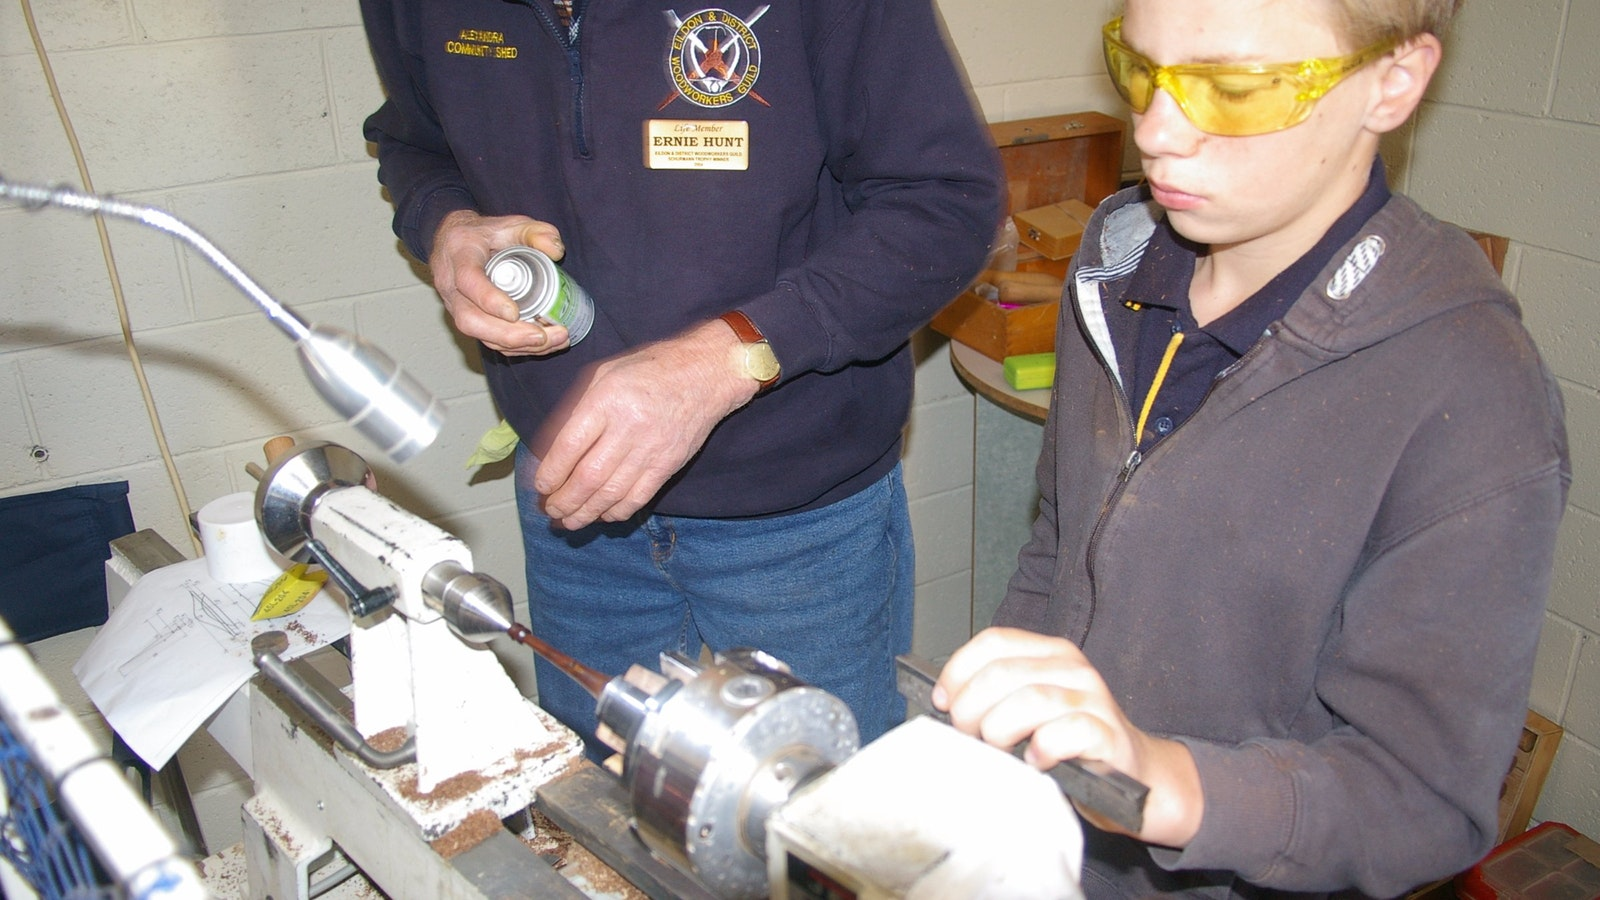 Wood turning demonstrations